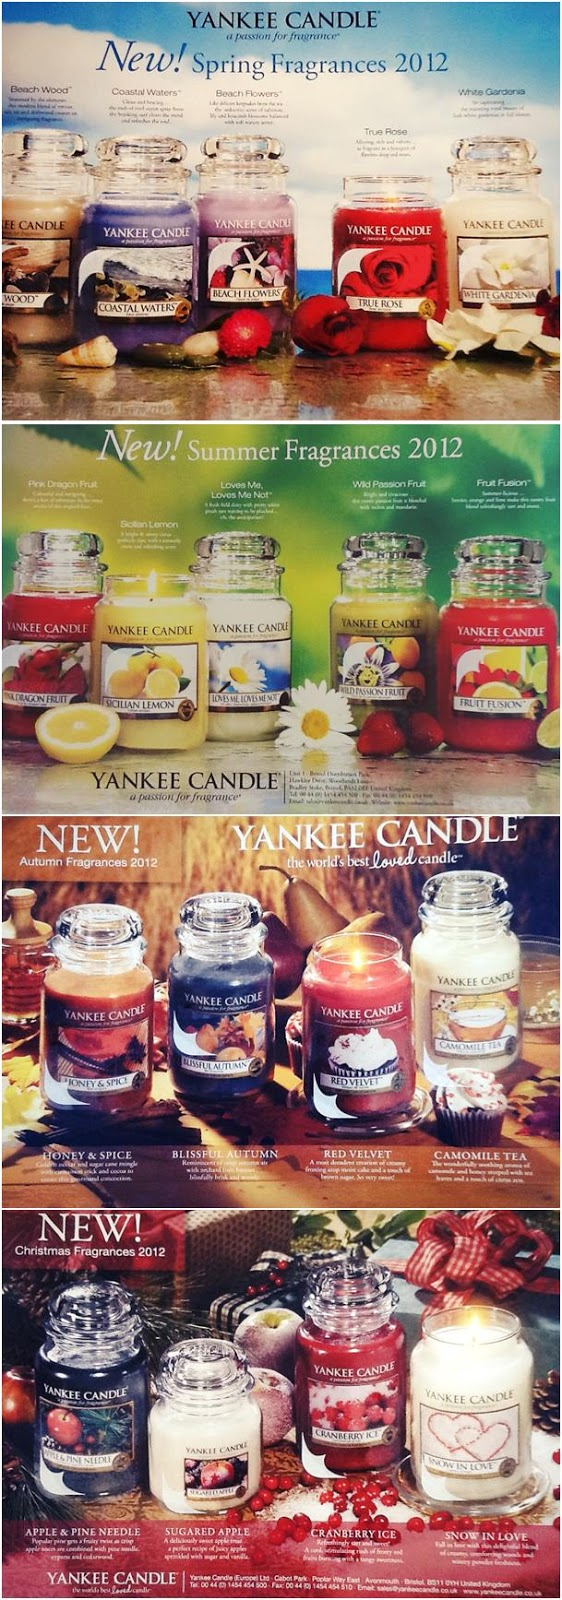 YANKEE CANDLE - THROUGH THE YEAR 2012: Spring: Beach Wood, Coastal Waters, ...